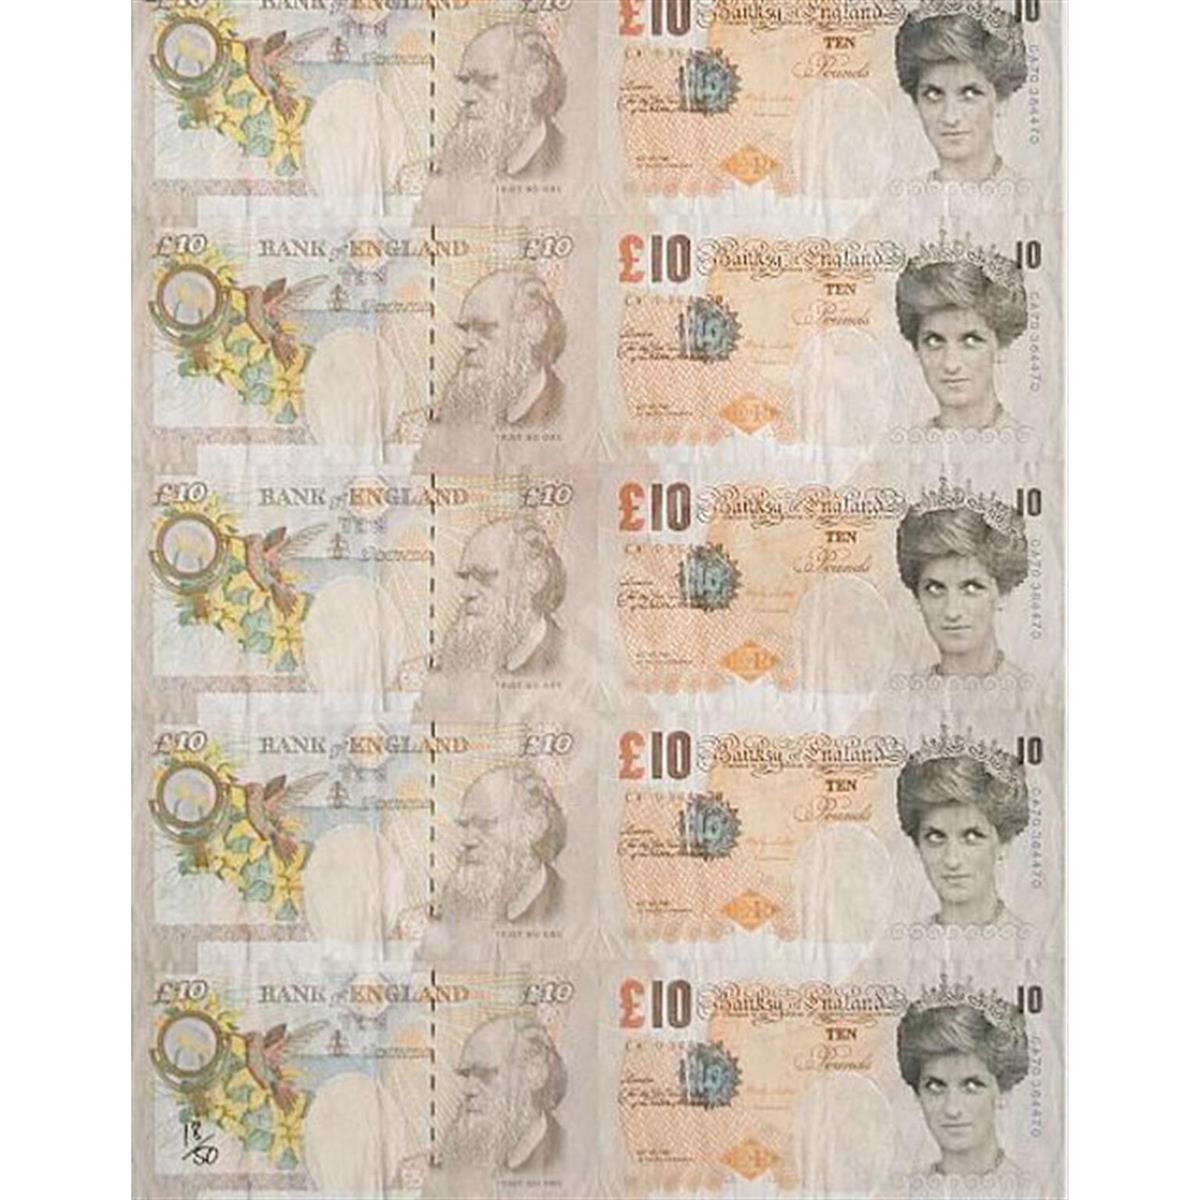 Di Faced Tenner by Banksy